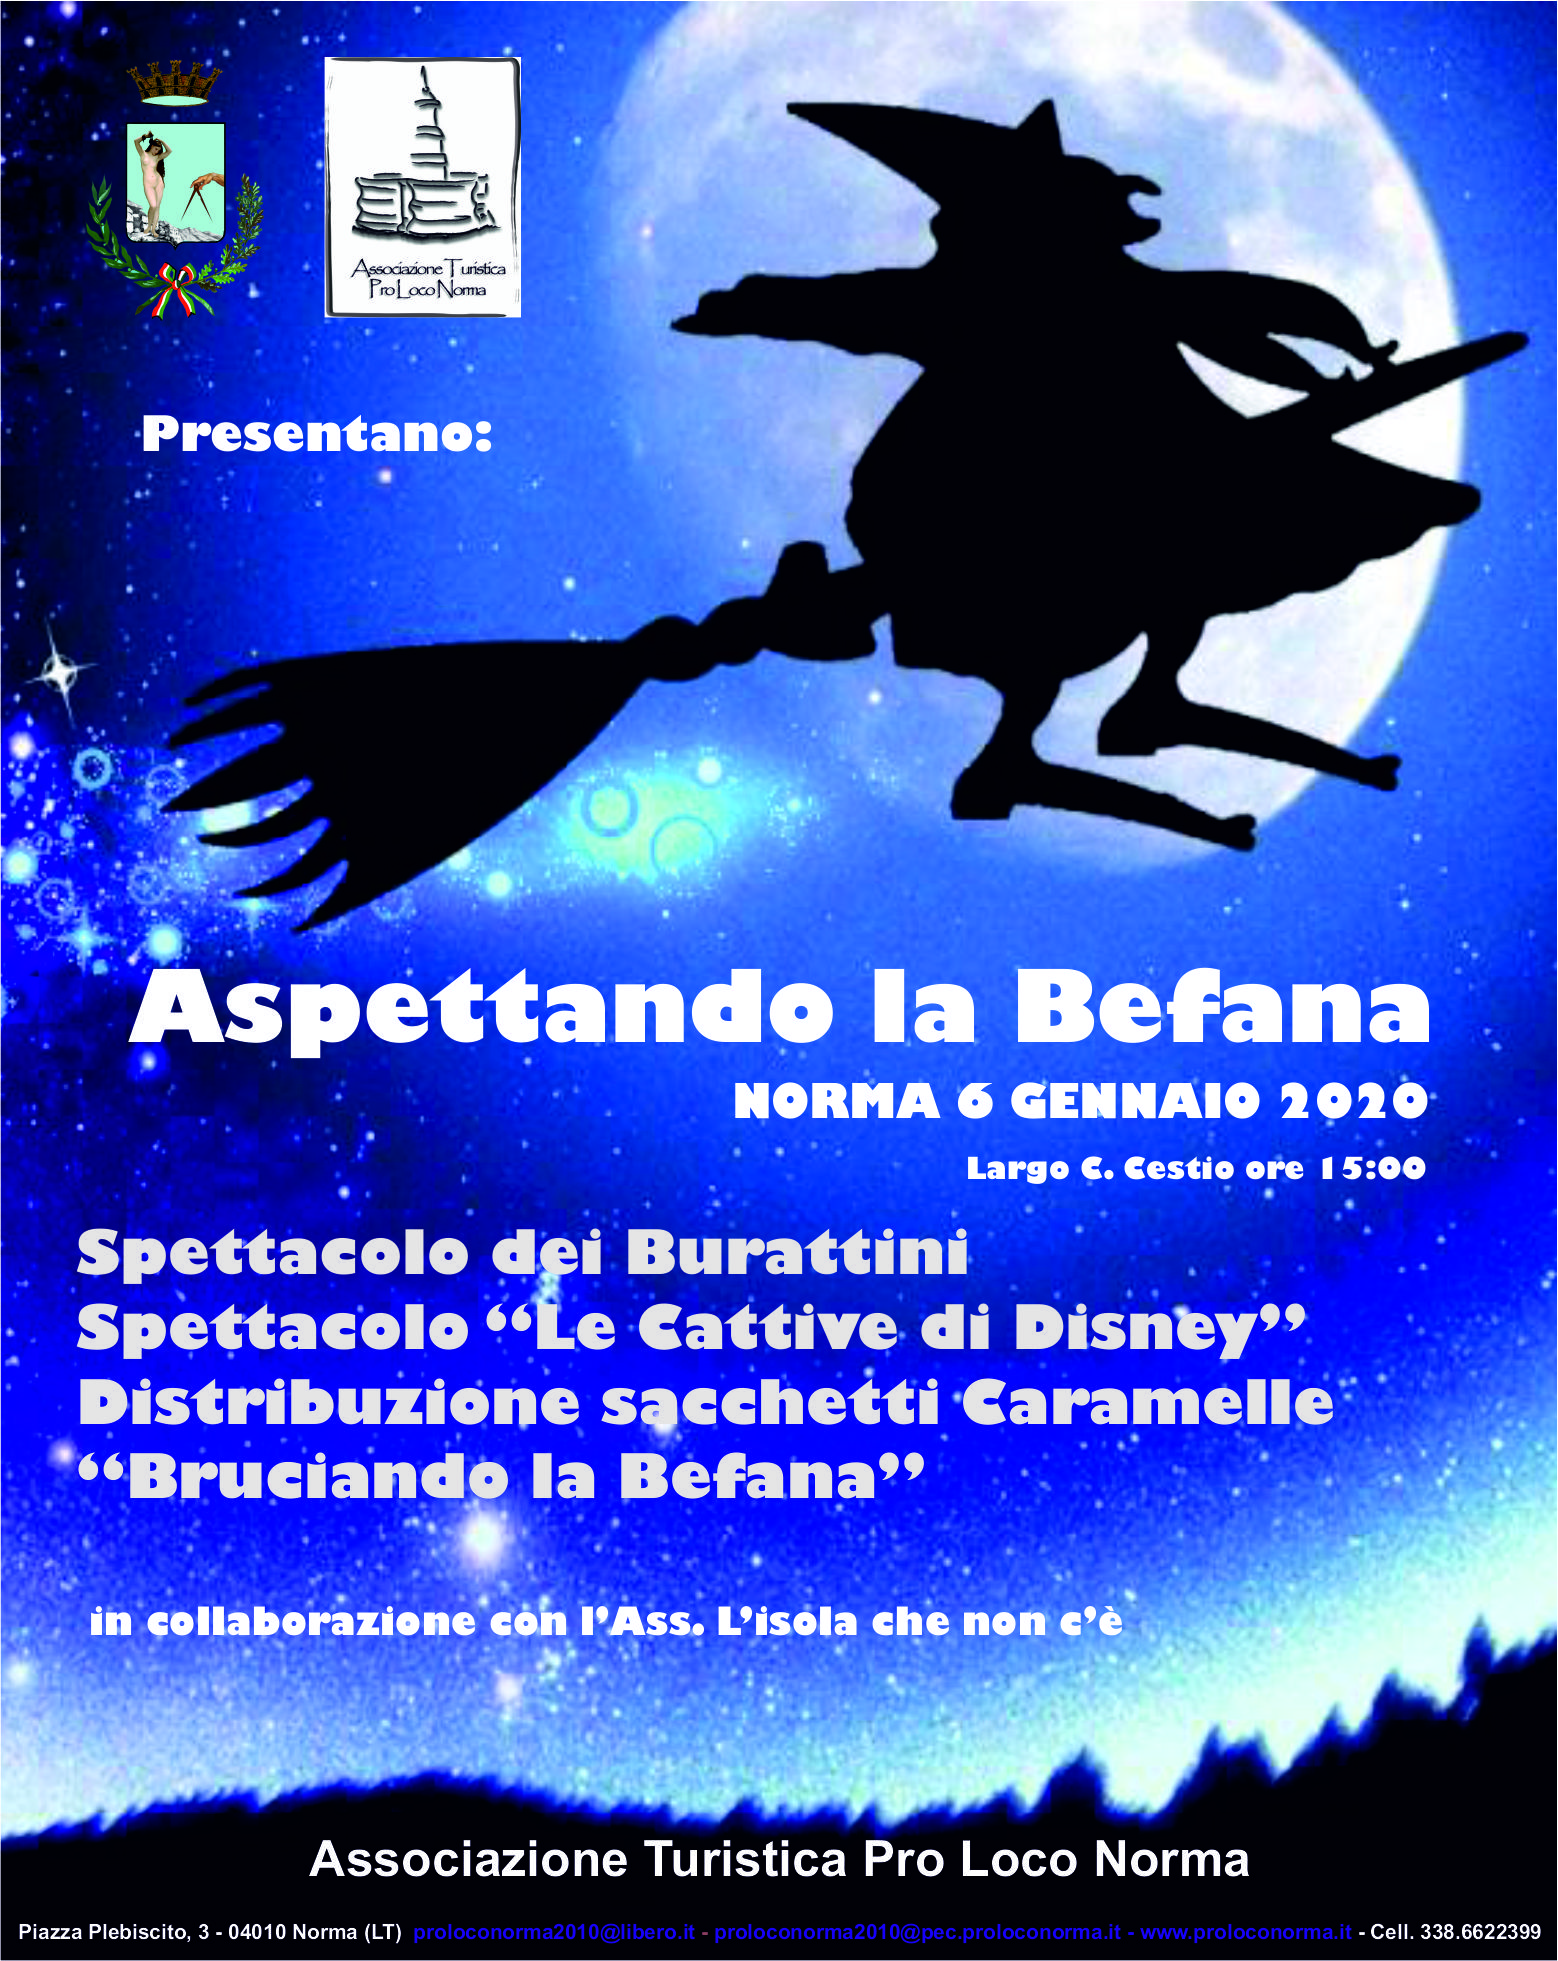 images/banners/befana.jpg